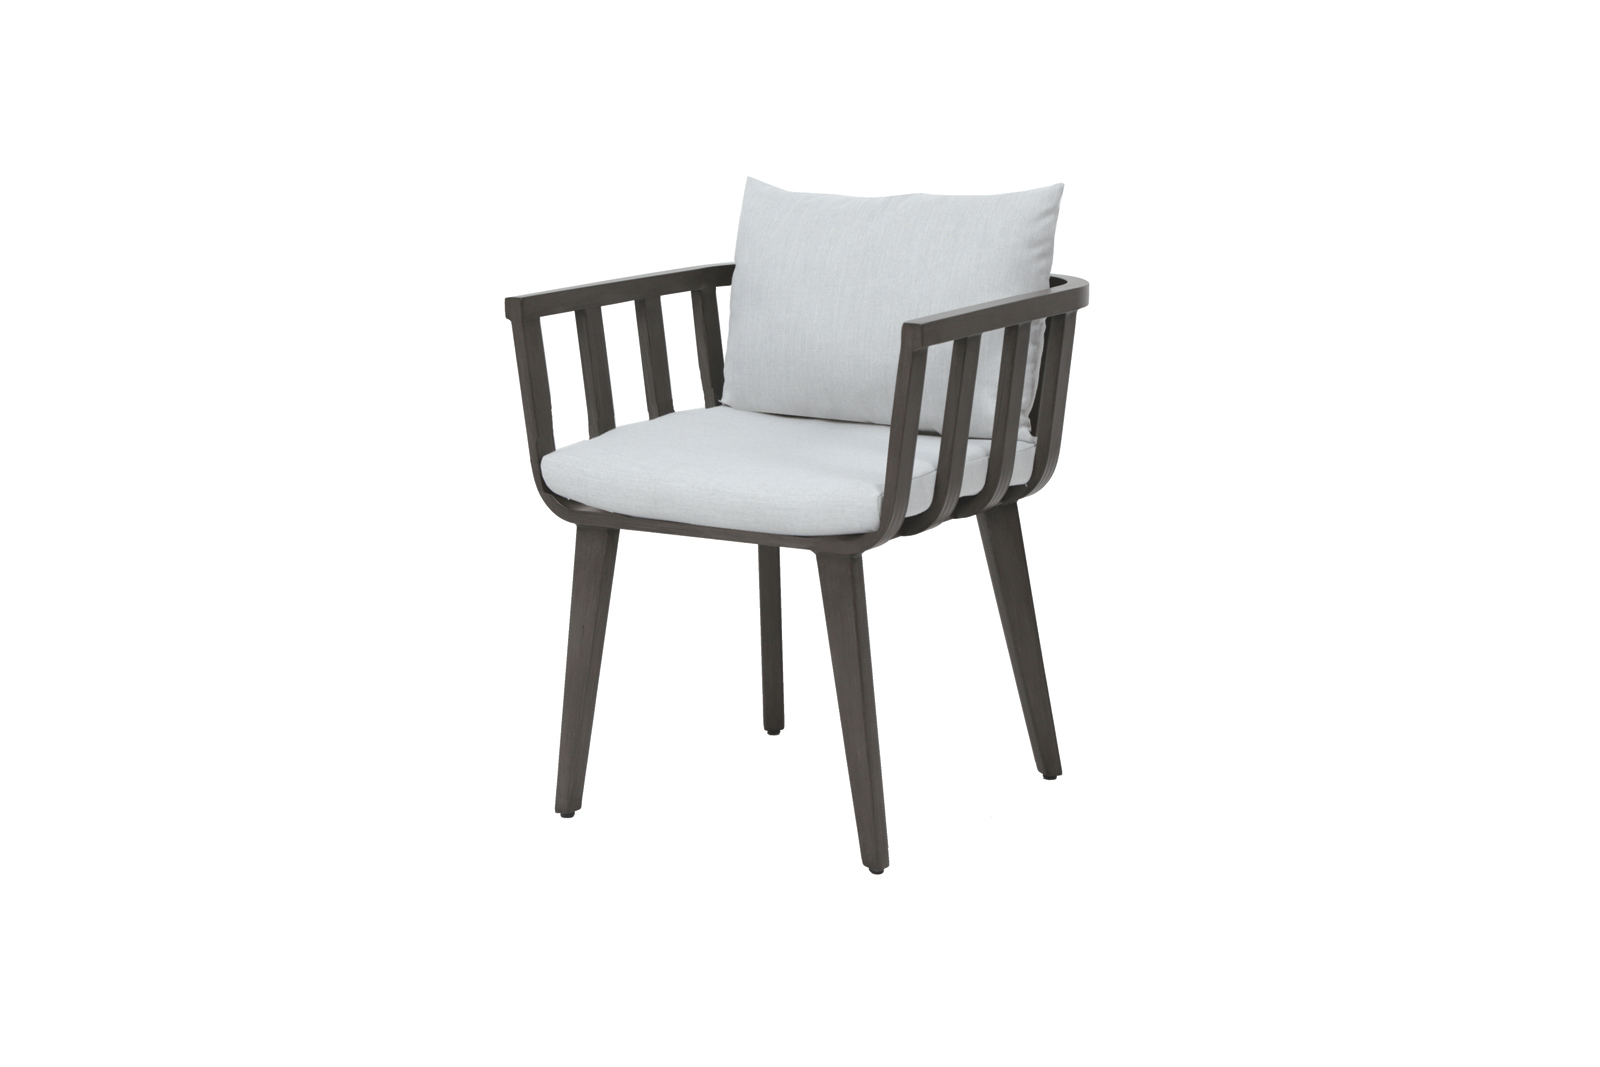 The Seville dining arm chair in metal frame with light colored cushions.